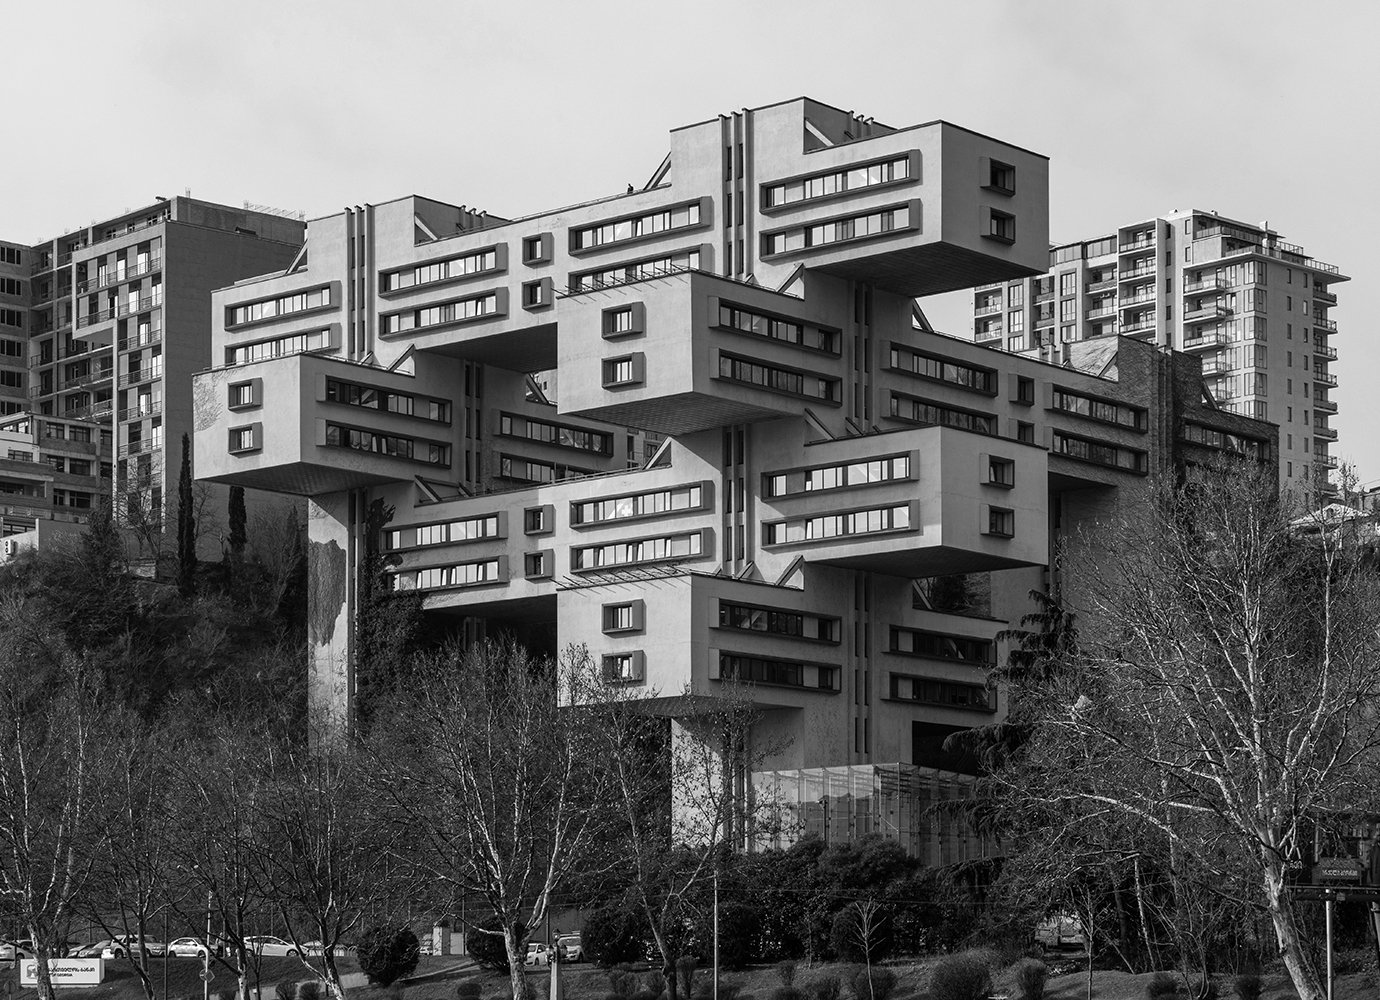 On the map: 6 modernist architectural monuments of 20th century Tbilisi